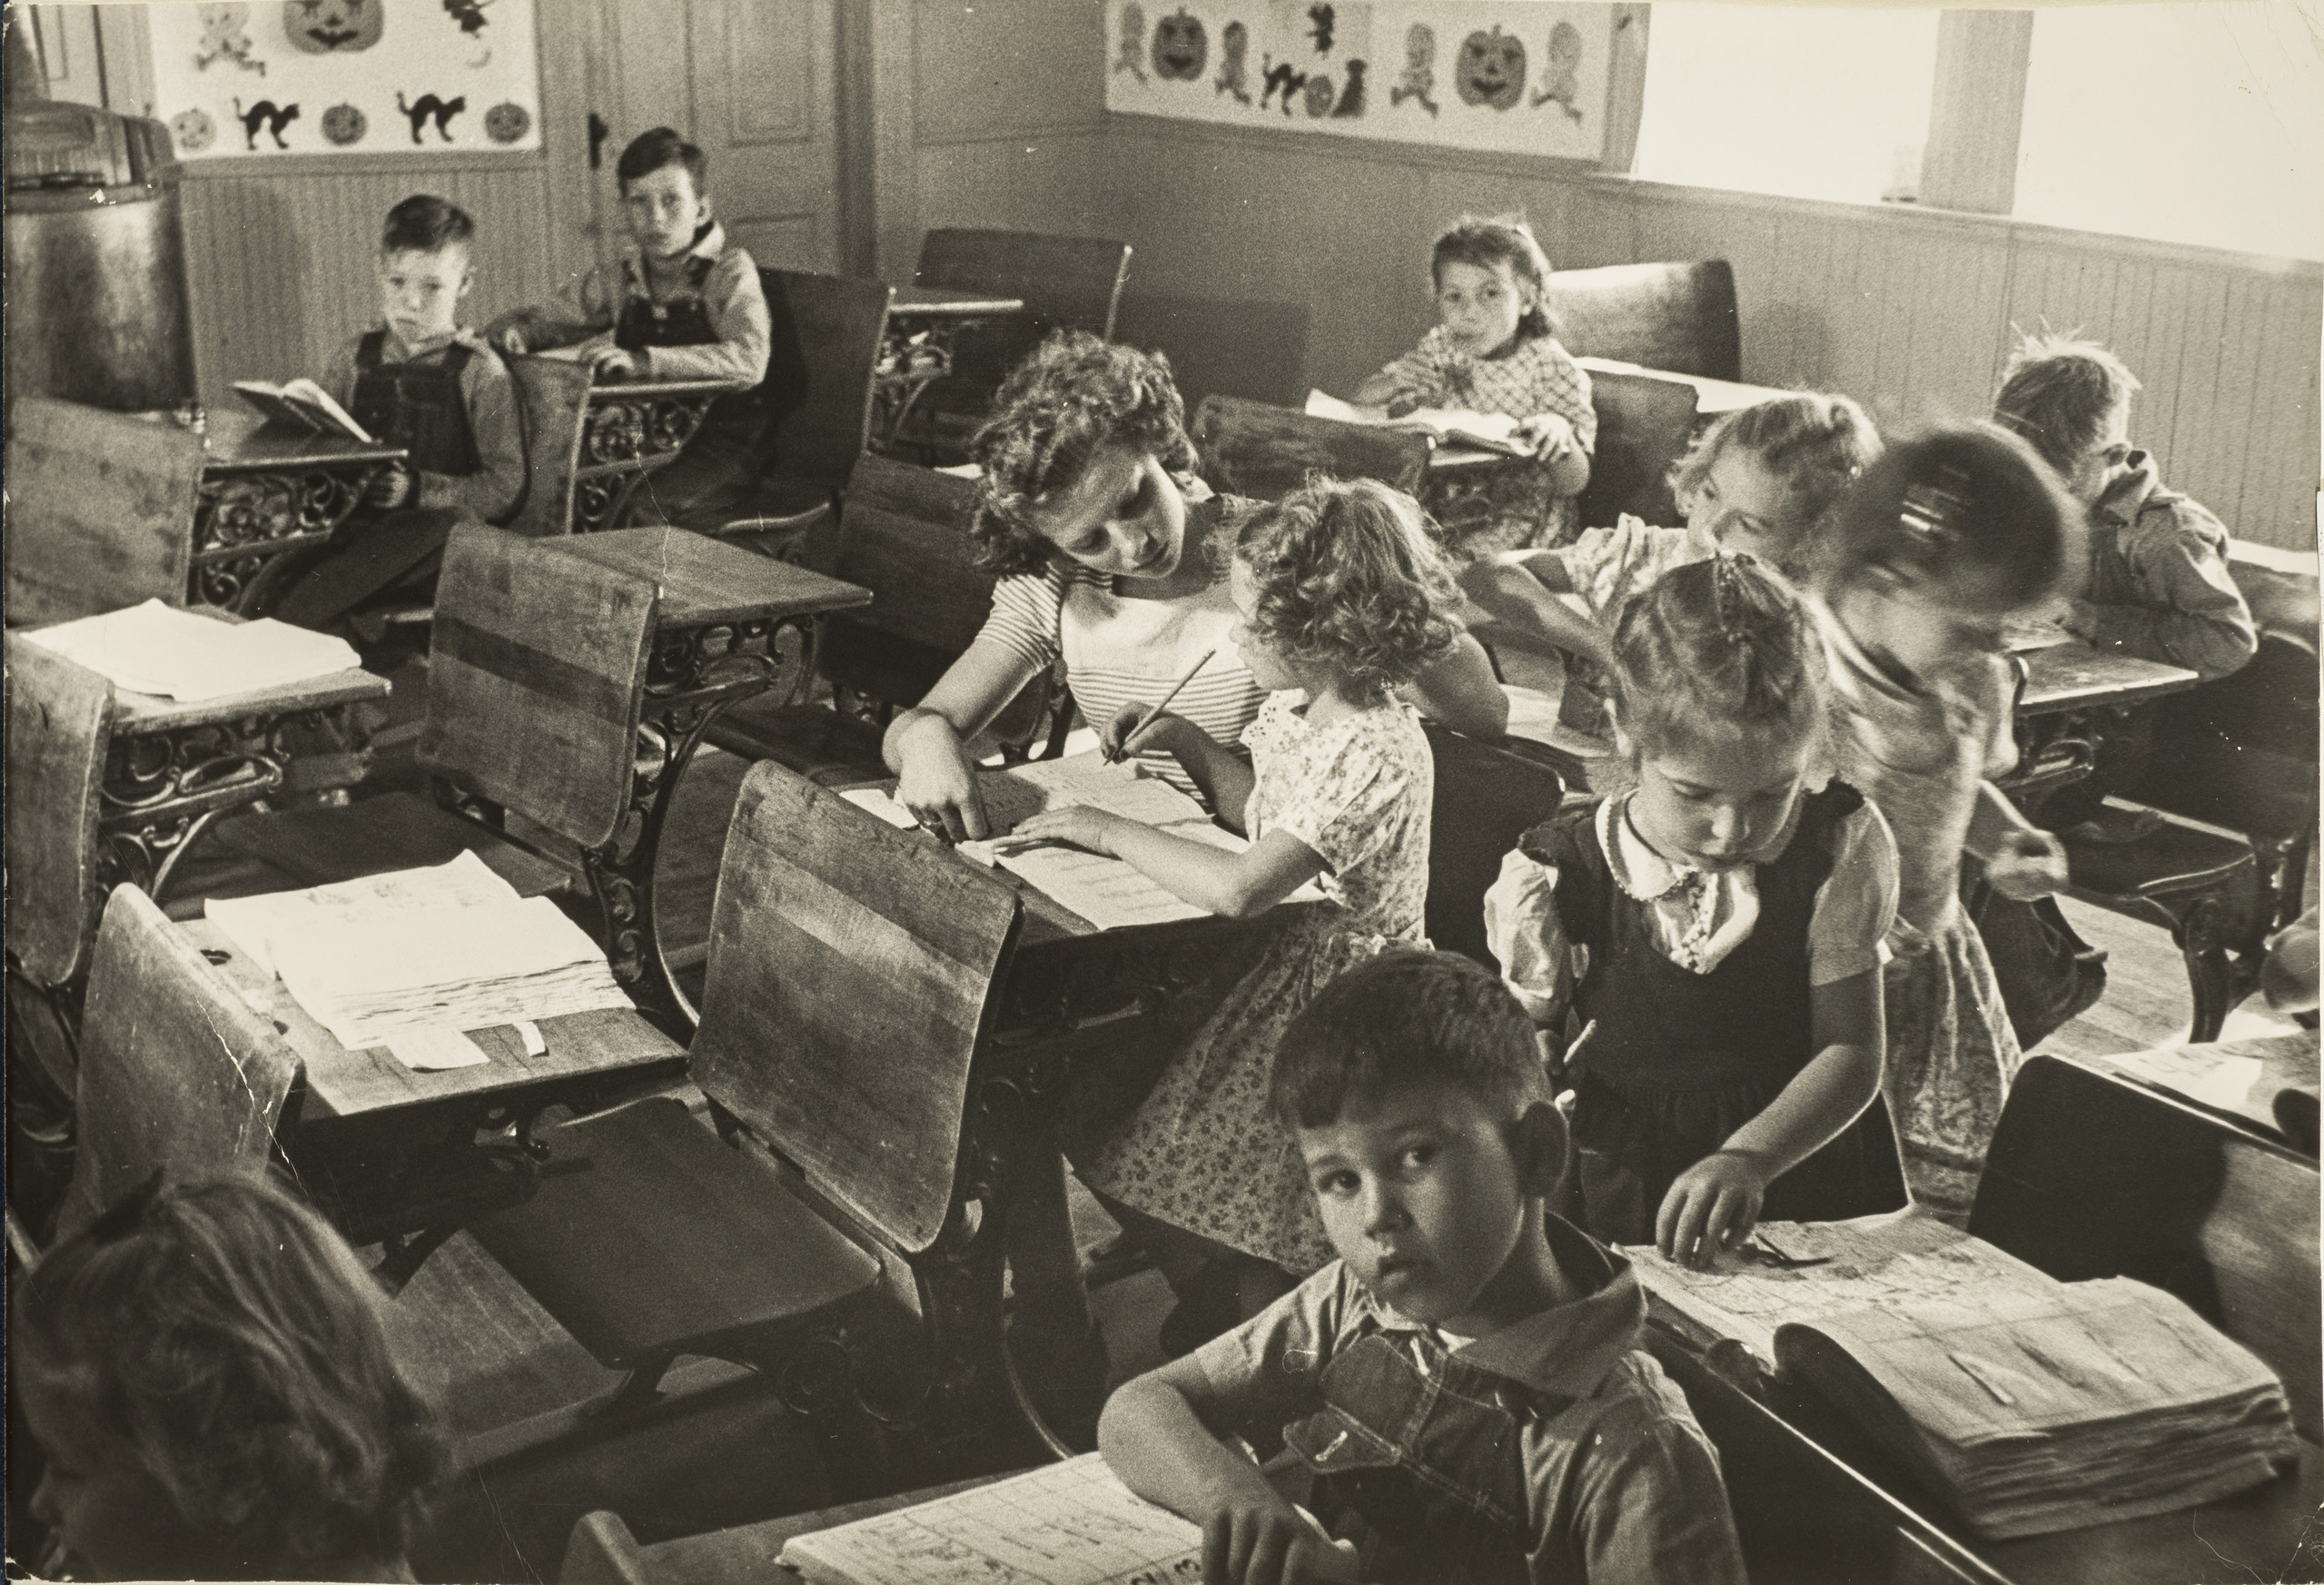 Black and white photograph of a primary school classroom in 1948. Light-skinned children sit at dark wood desks attending to books and papers or looking directly into the camera. At the center, the young teacher assists a girl with her lesson.